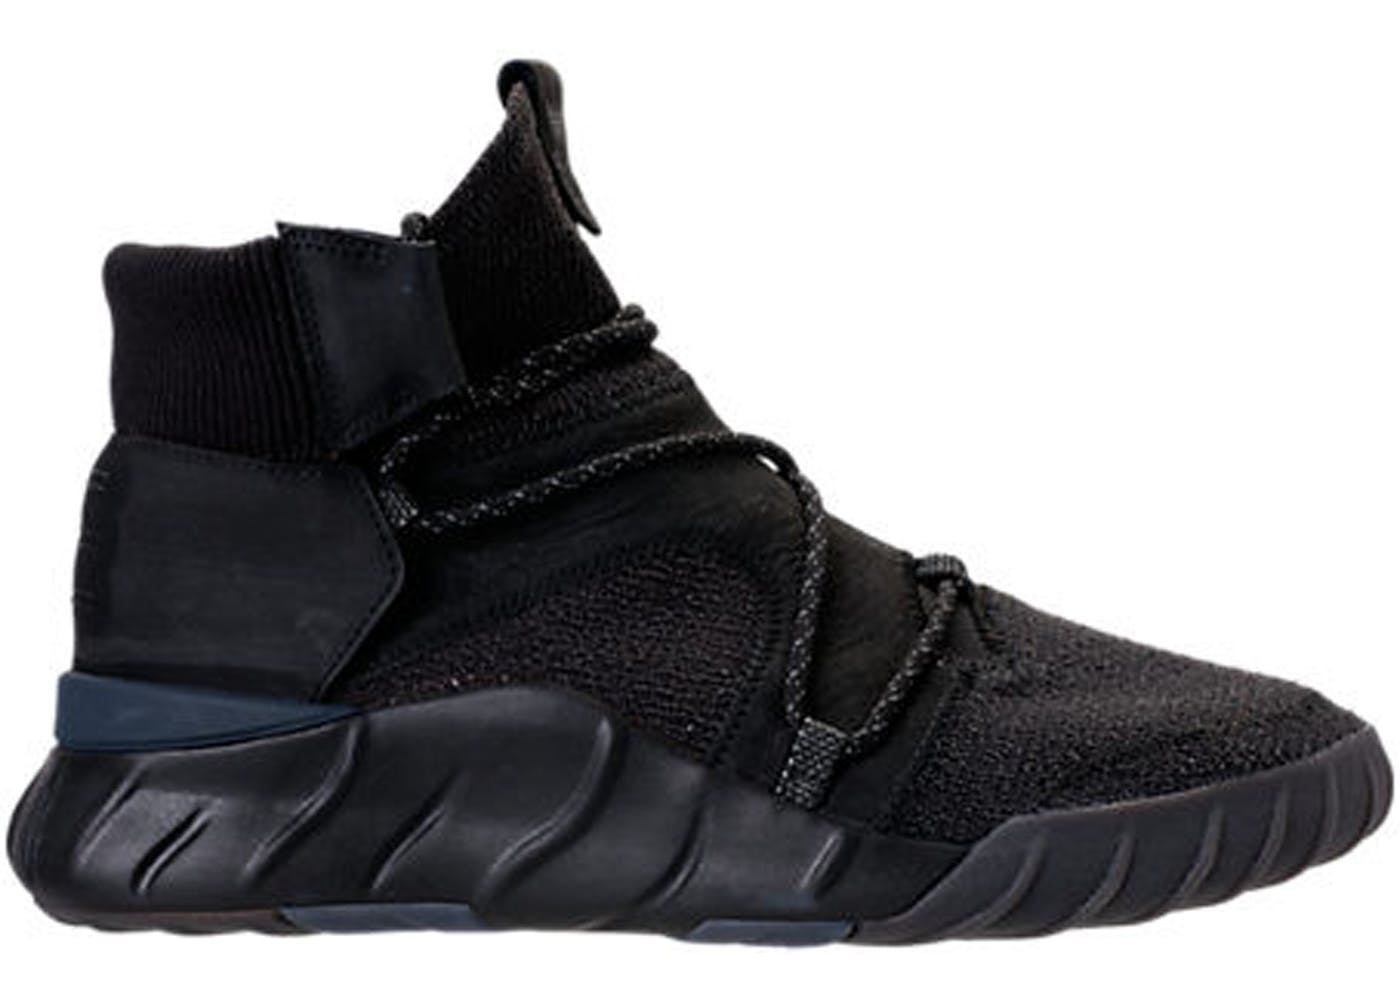 adidas Men's Tubular X Primeknit High Top Trainers.uk